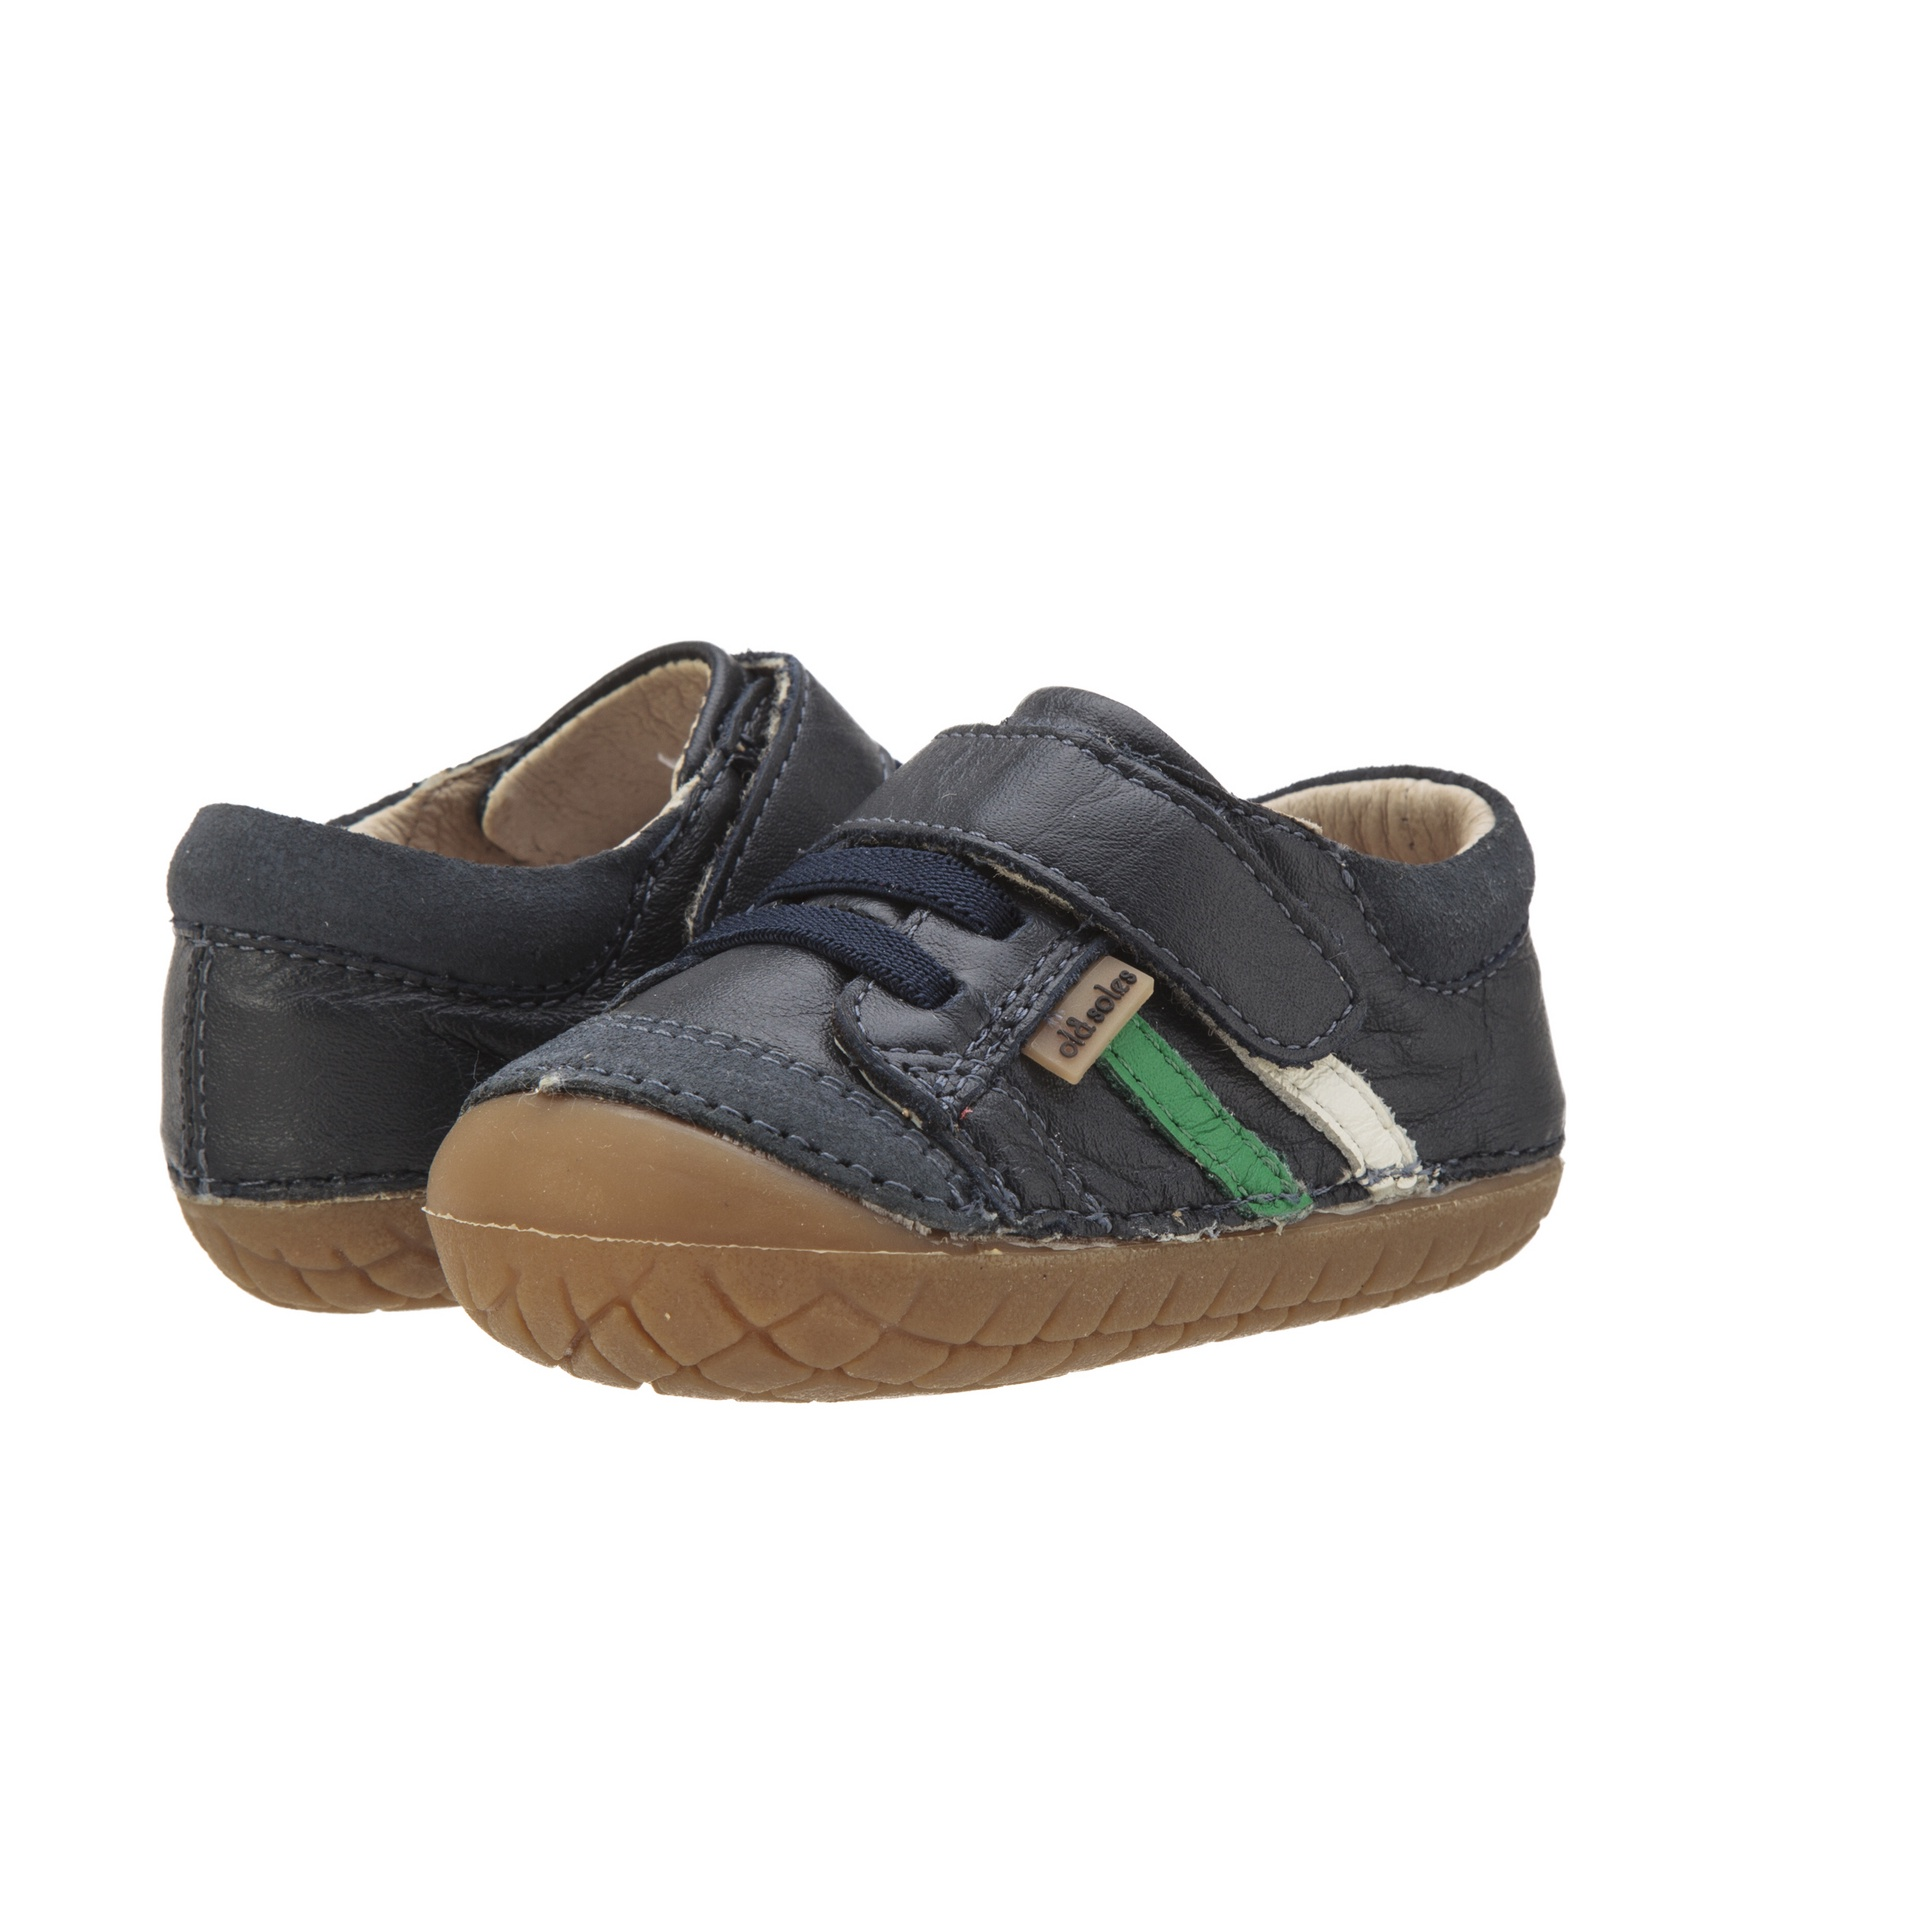 Old Soles Pave Denzle Navy Green White